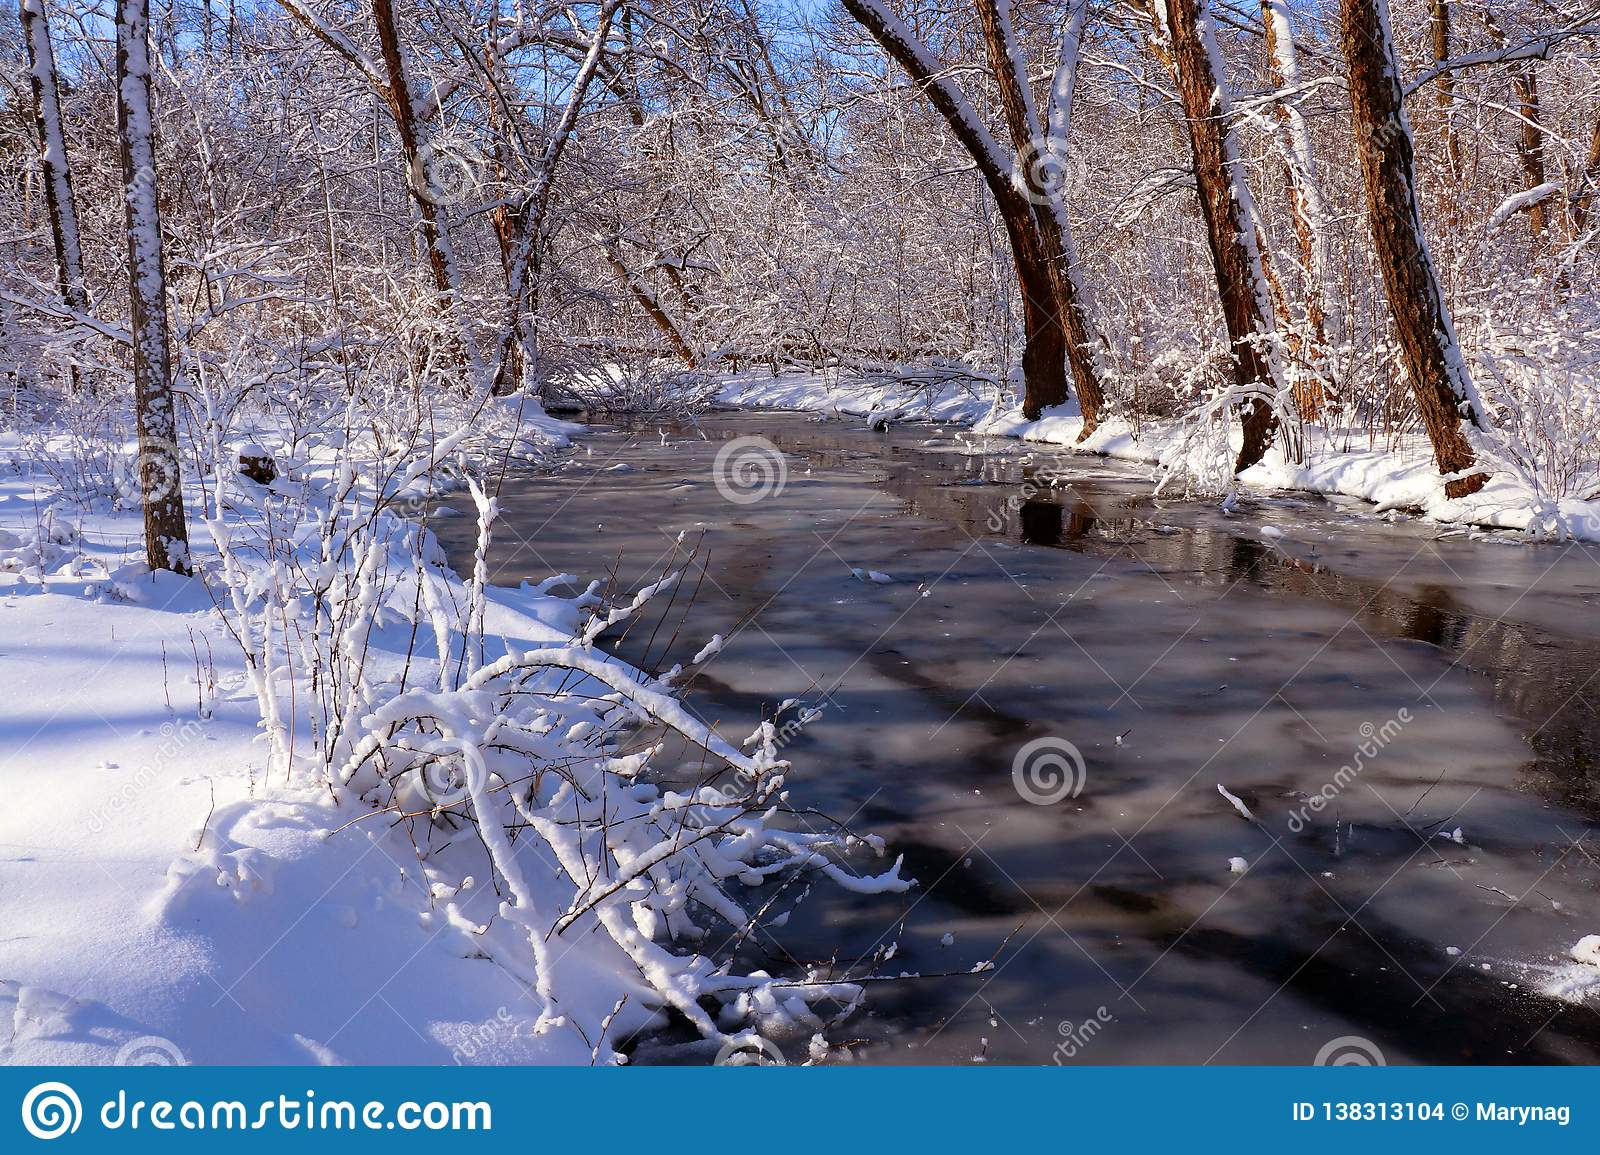 Saturday Morning Snow In Madison >> Beautiful Winter Morning After Snowfall Background Stock Photo